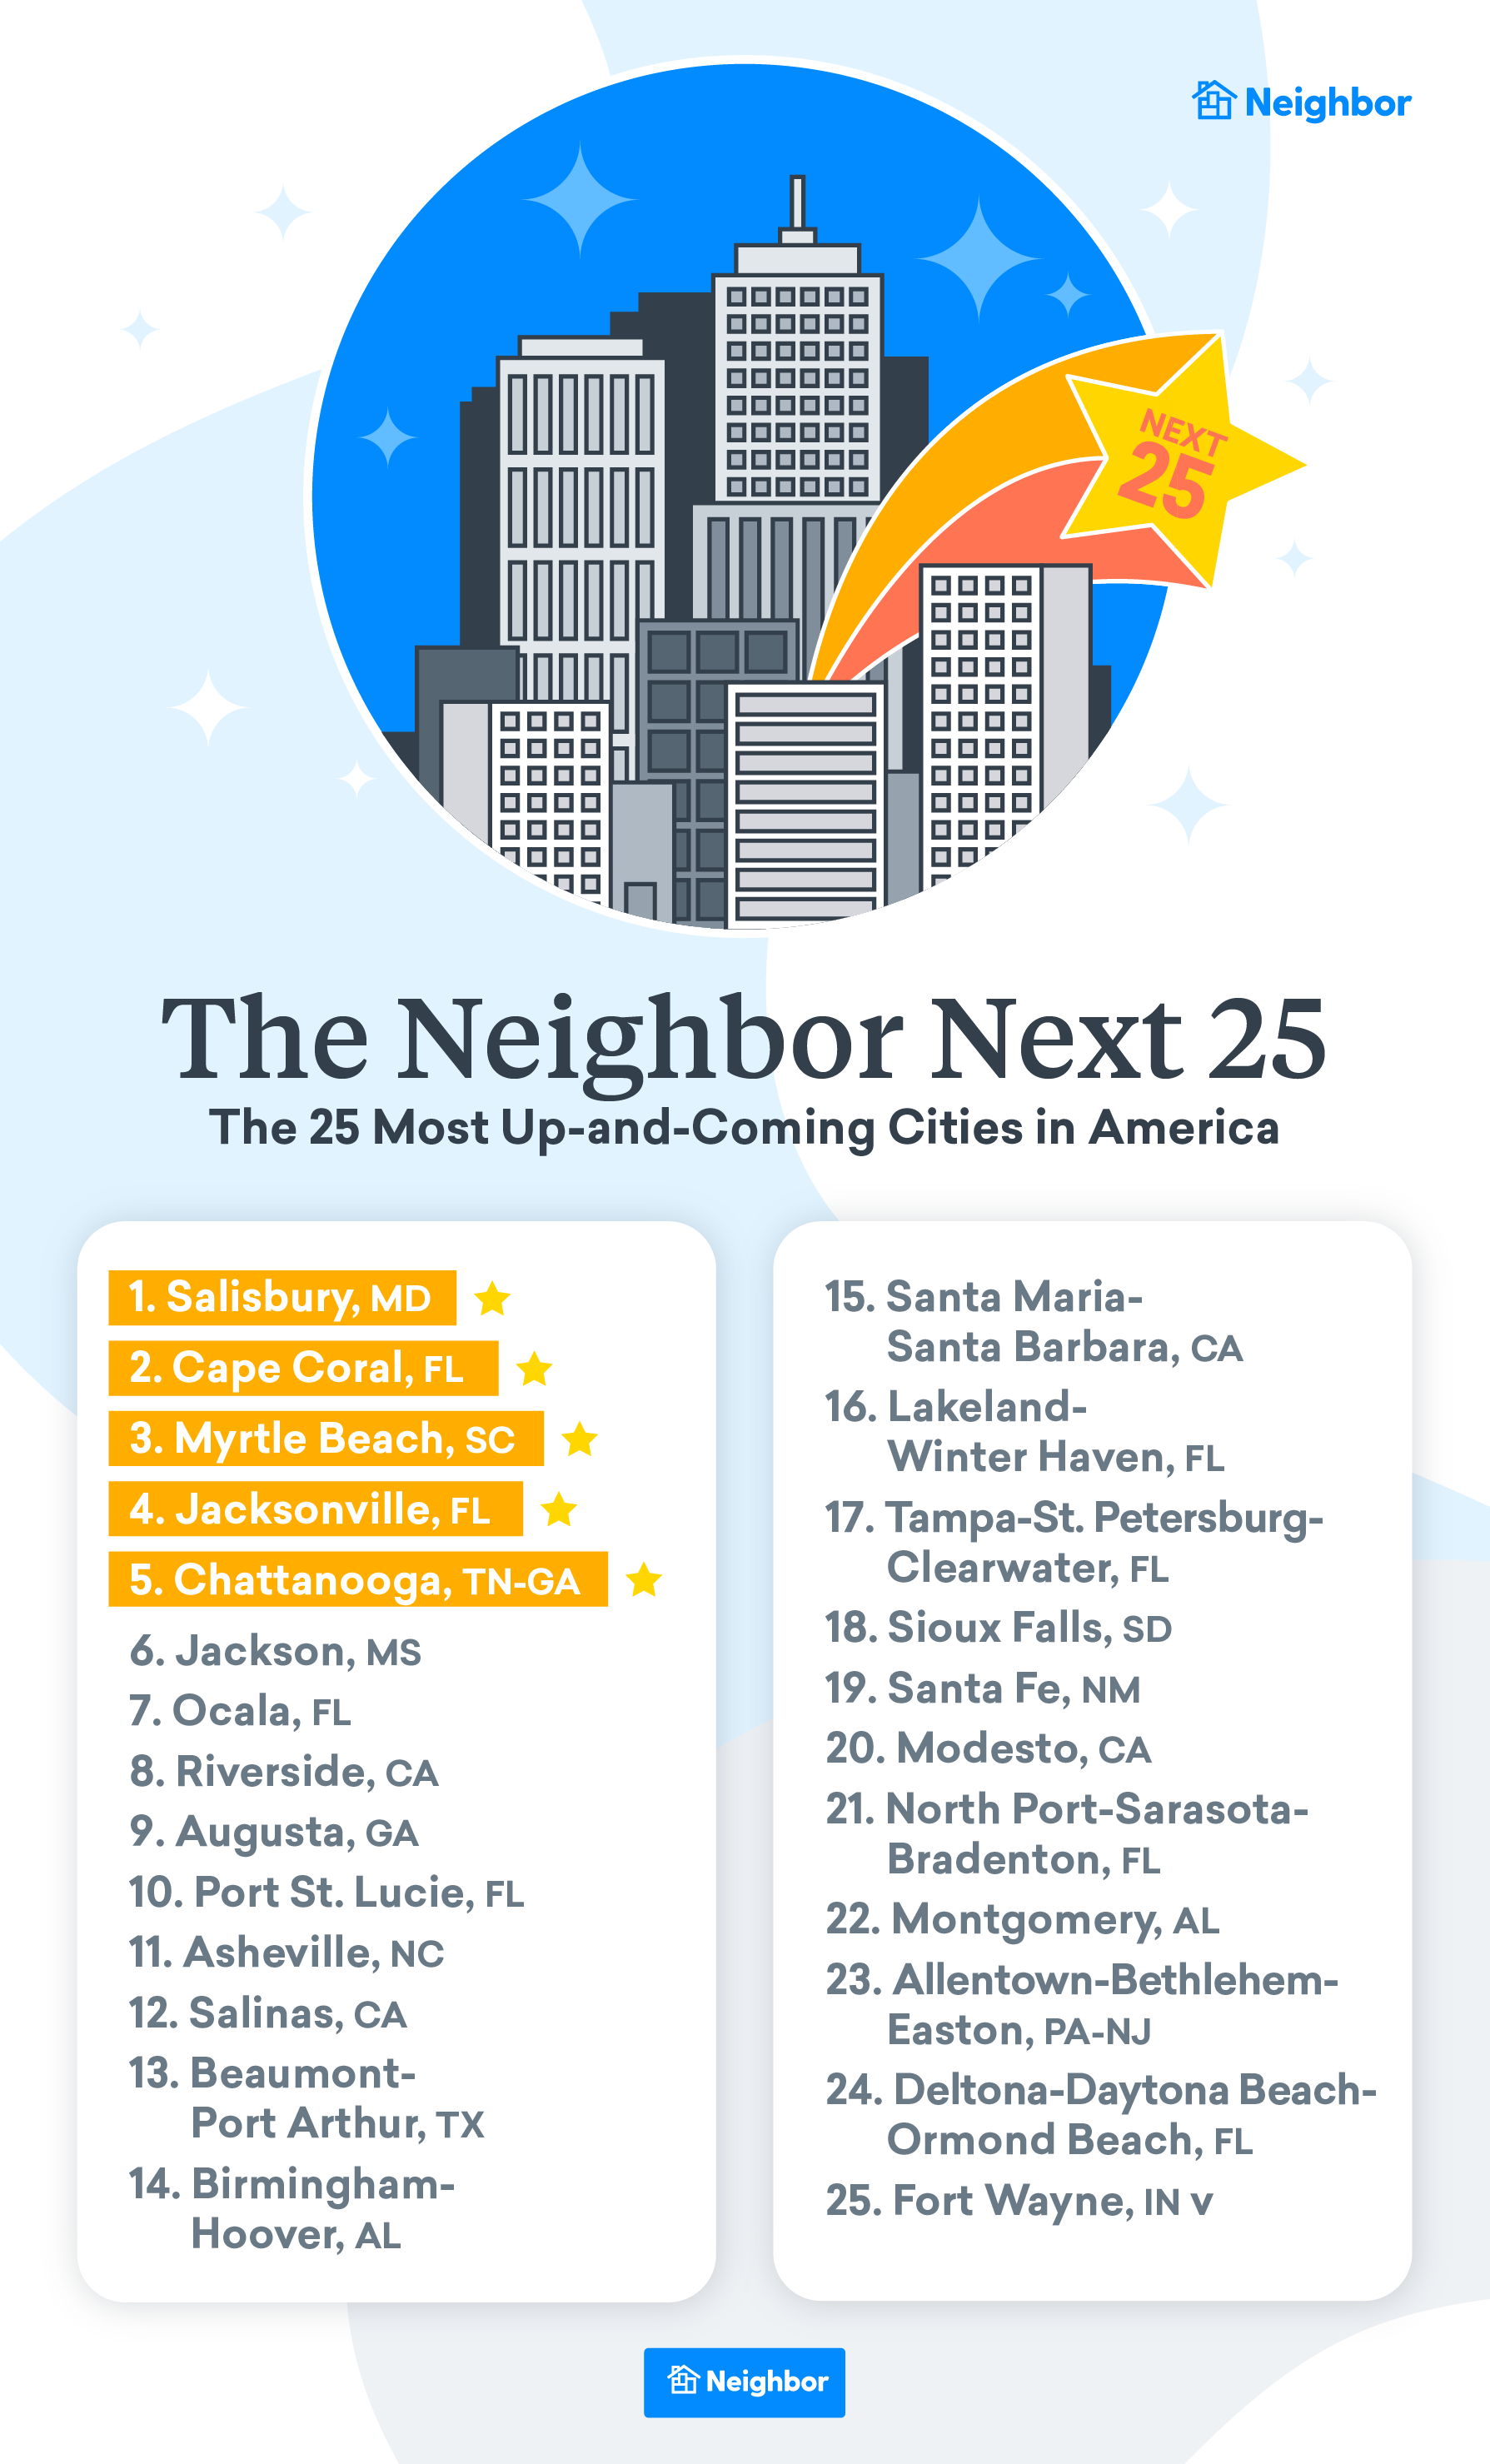 The Neighbor Next 25: The 25 Most Up-and-Coming Cities in America